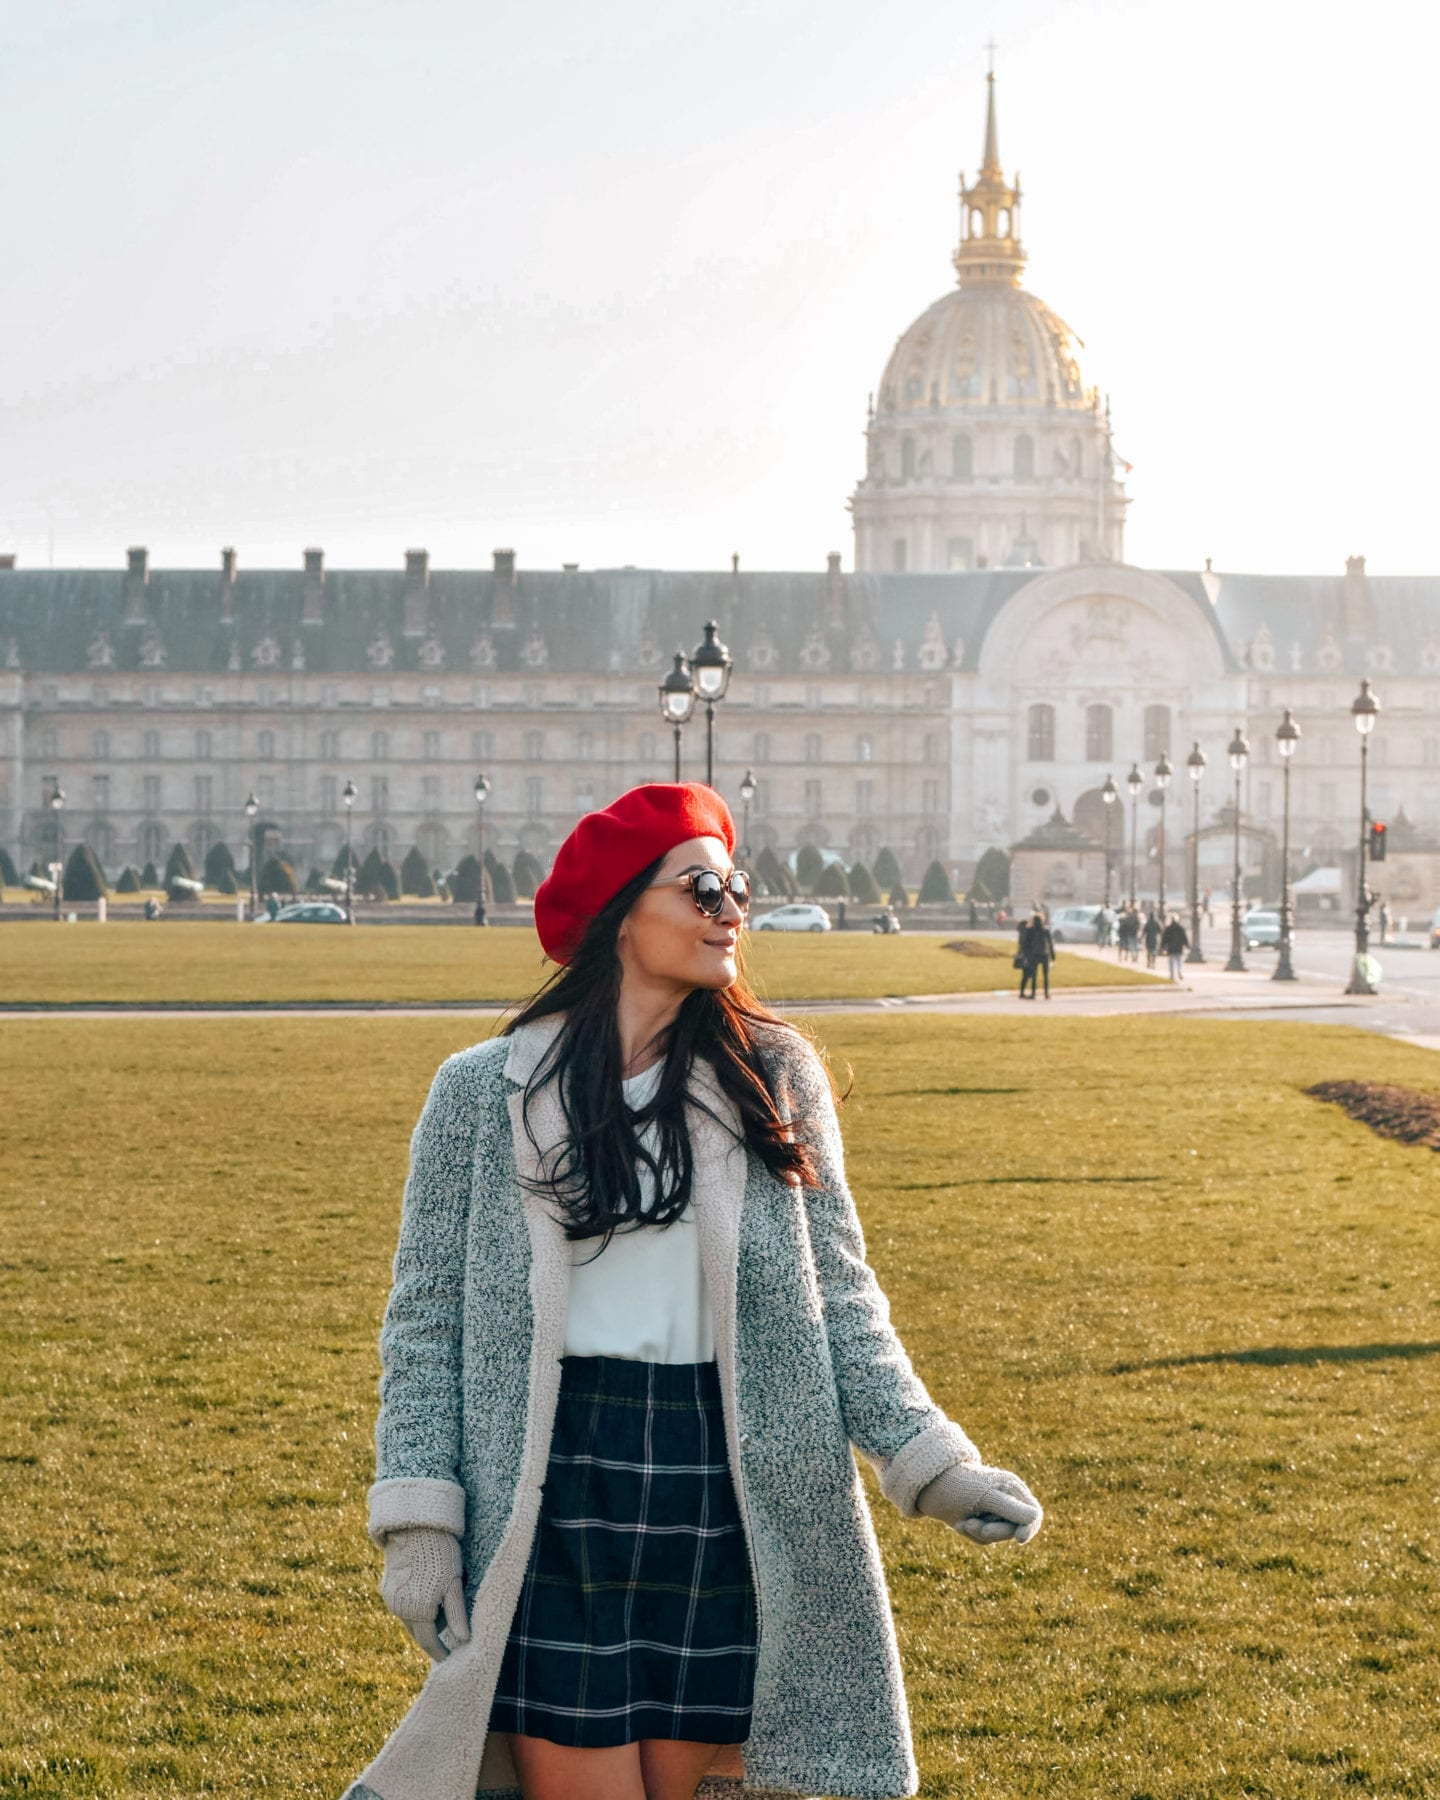 05155c0e1a5 Paris Winter Fashion: 10 style tips on what to wear when visiting Paris